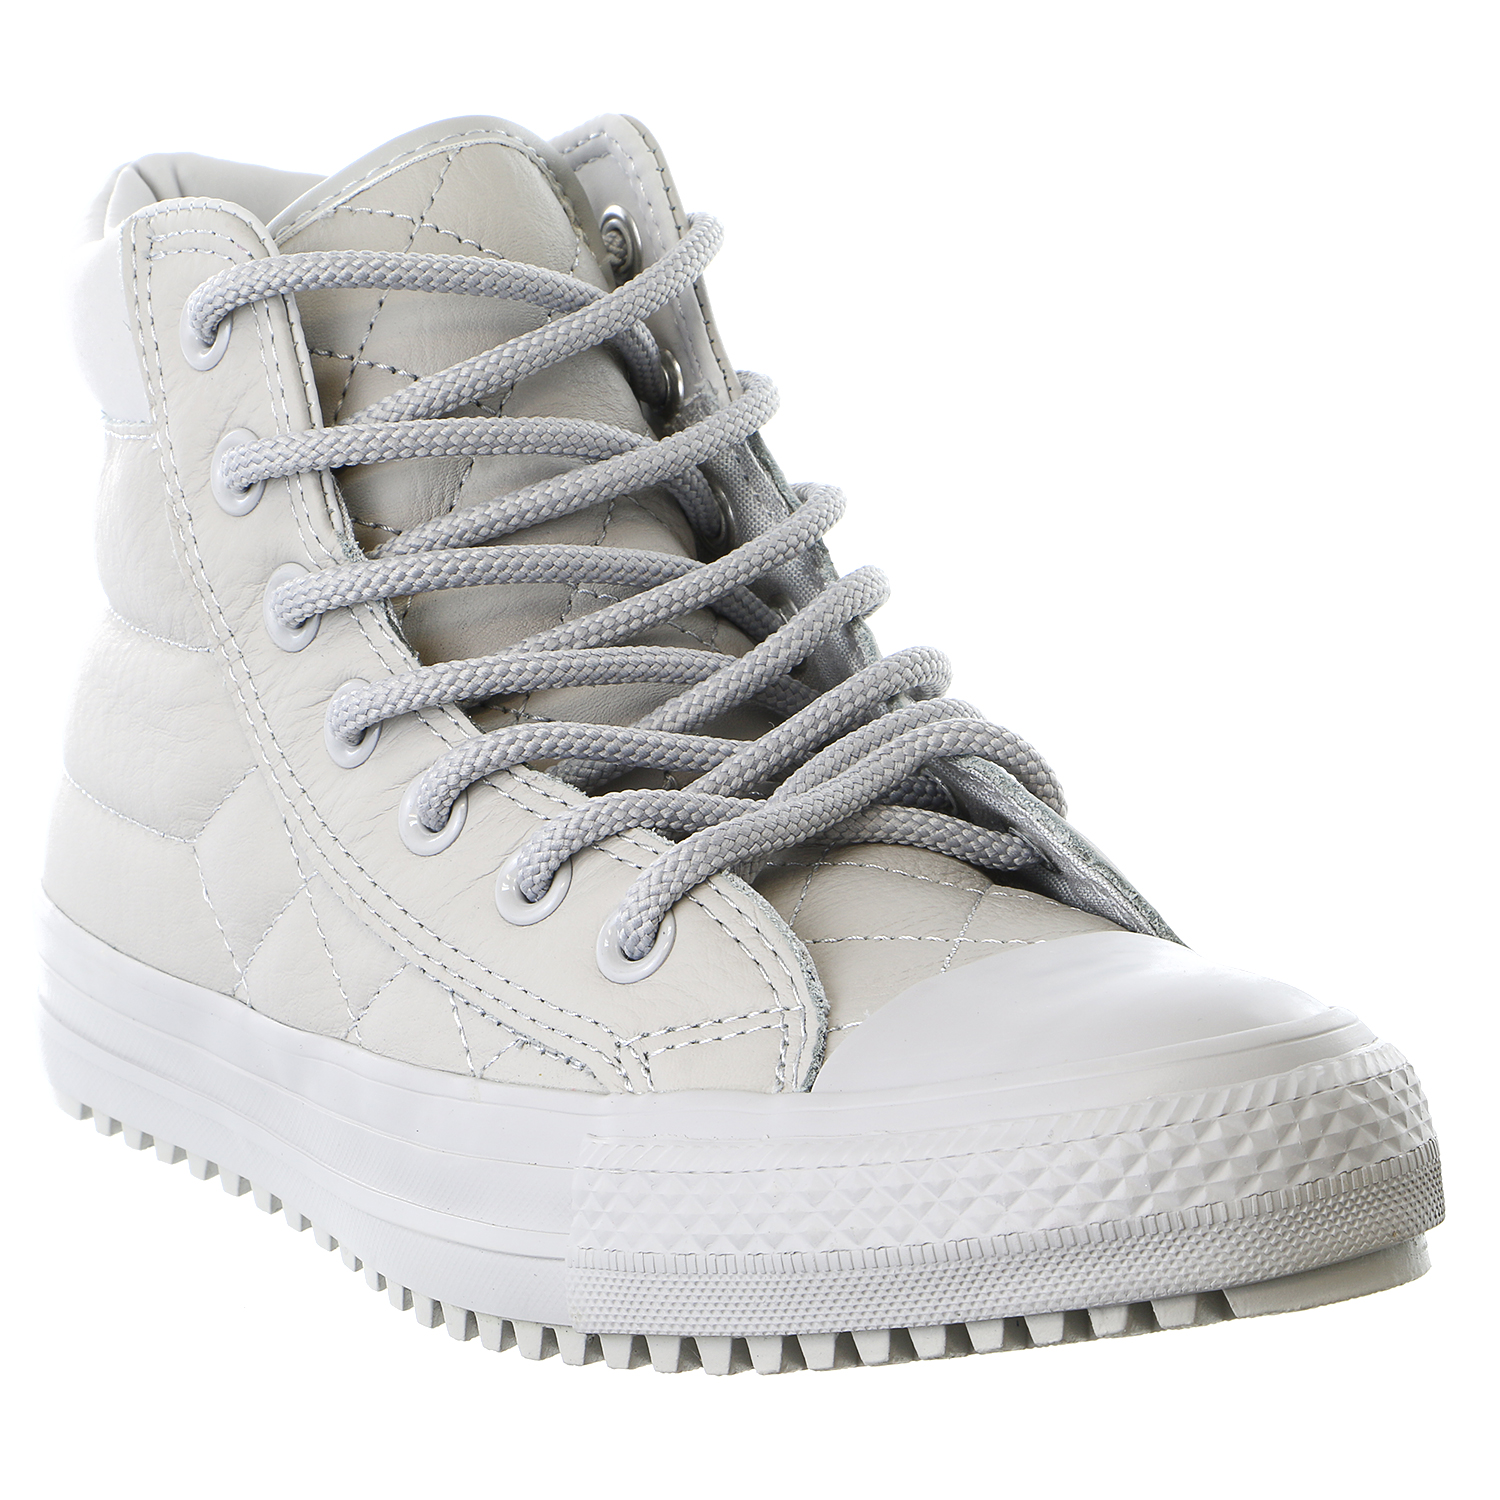 Converse Unisex Chuck Taylor All Star Boot PC Hi Fashion Sneaker Leather Shoe - Mens